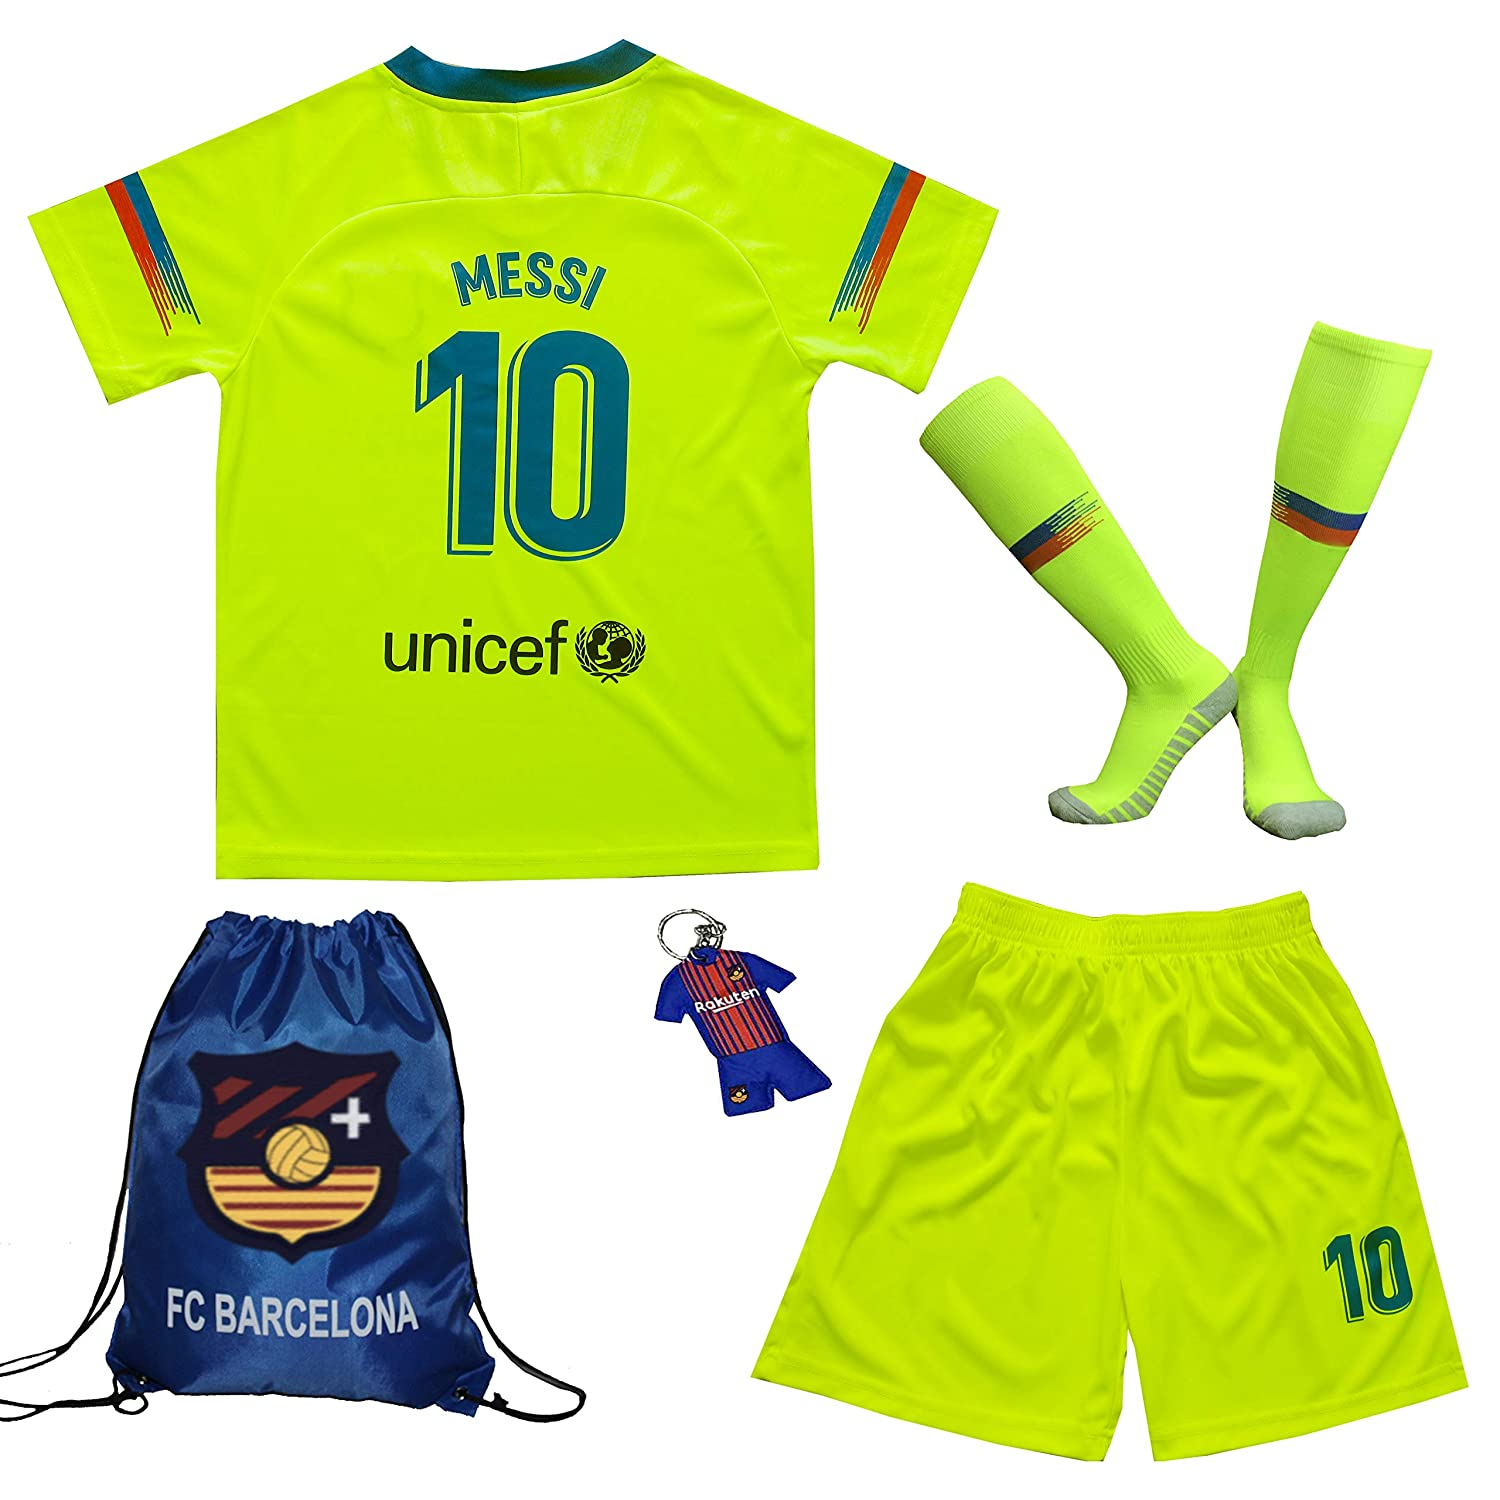 324d618e6b3 Amazon.com   BIRDBOX Youth Sportswear Barcelona Leo Messi 10 Kids Away  Soccer Jersey Shorts Bag Keychain Football Socks Set   Sports   Outdoors